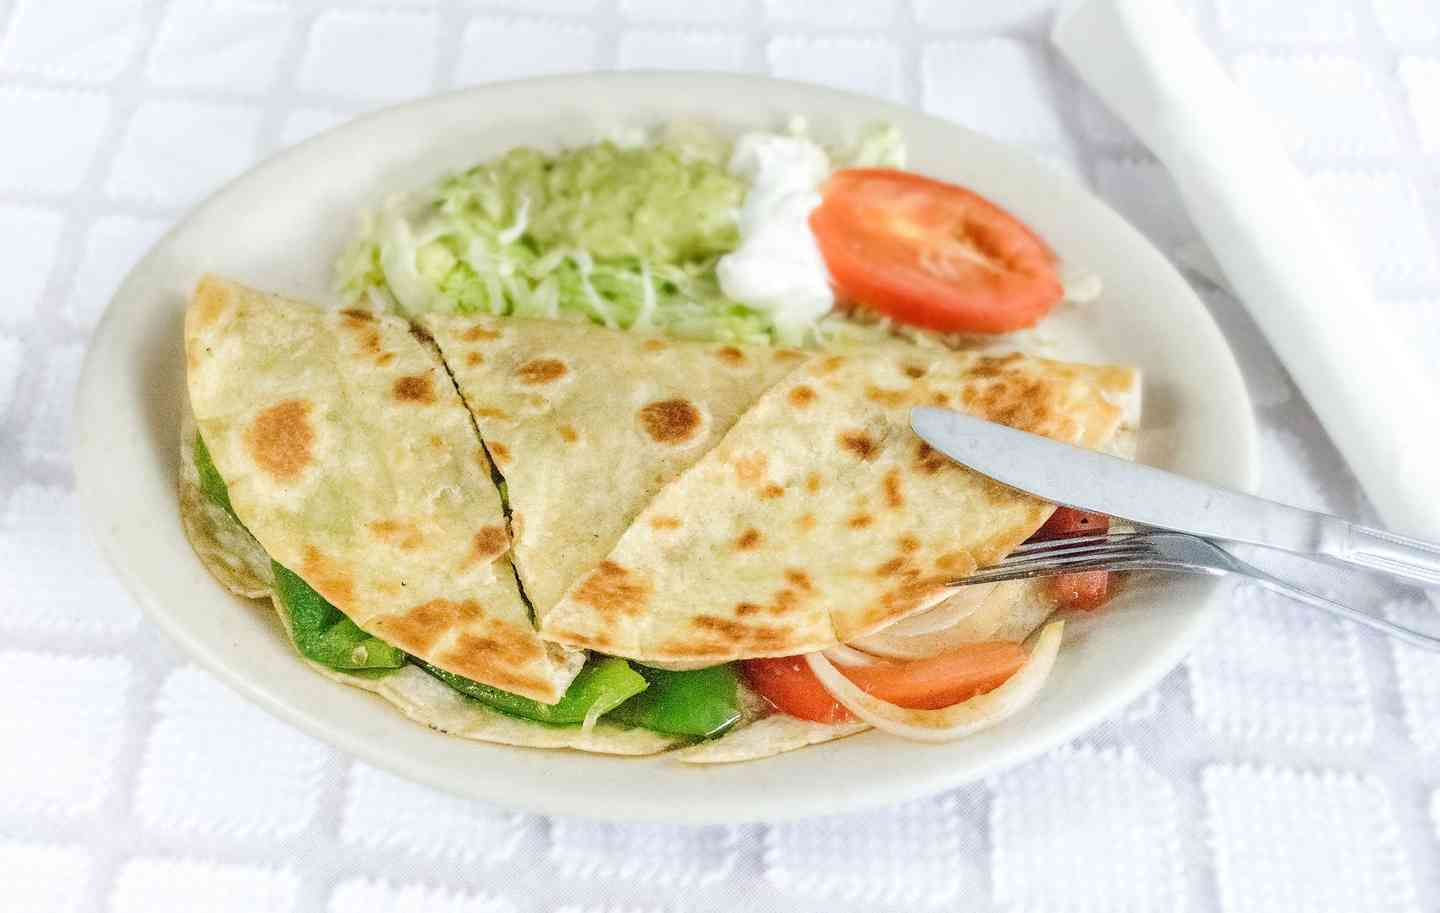 **Quesadilla Mexicana